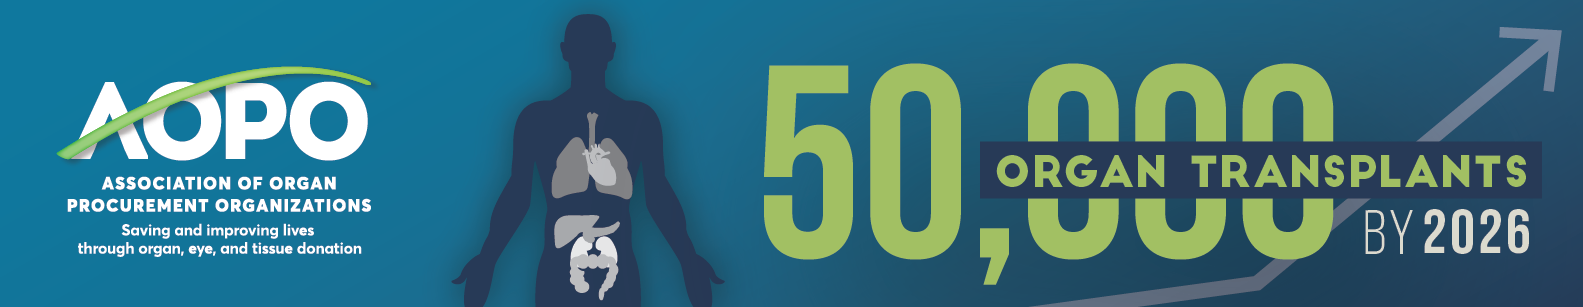 AOPO Announces 50,000 Organ Transplants by 2026 Campaign that Focuses on Improving System and Saving More Lives